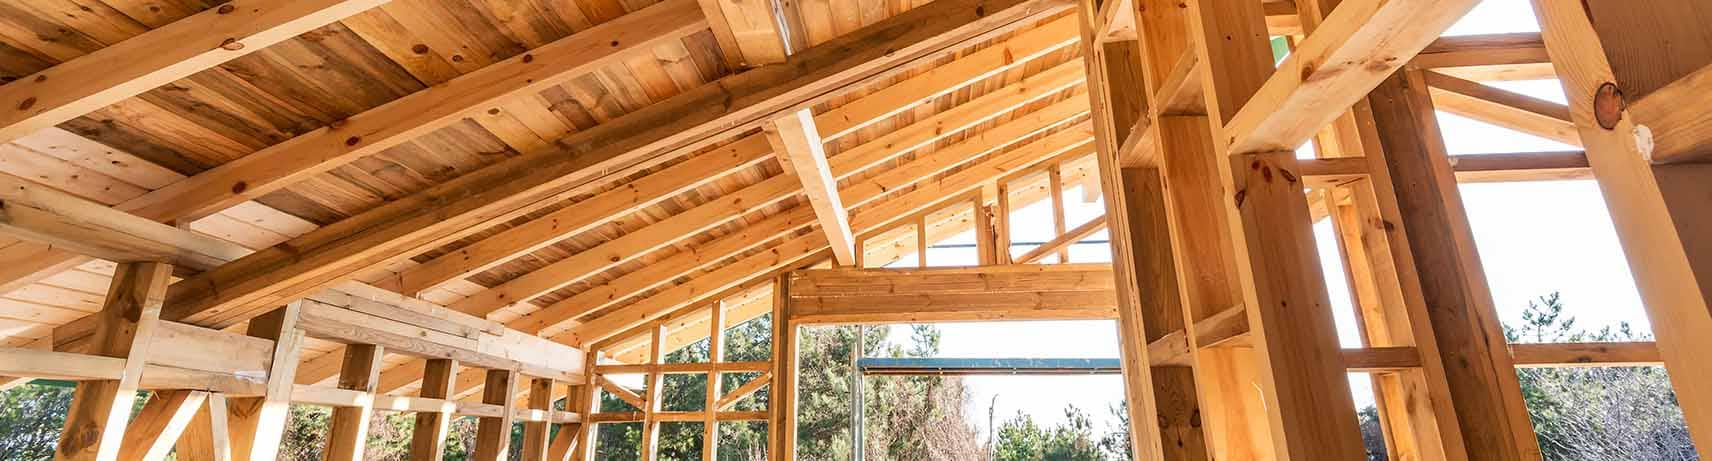 Concord Remodeling Contractor, Home Additions and Remodeling Company